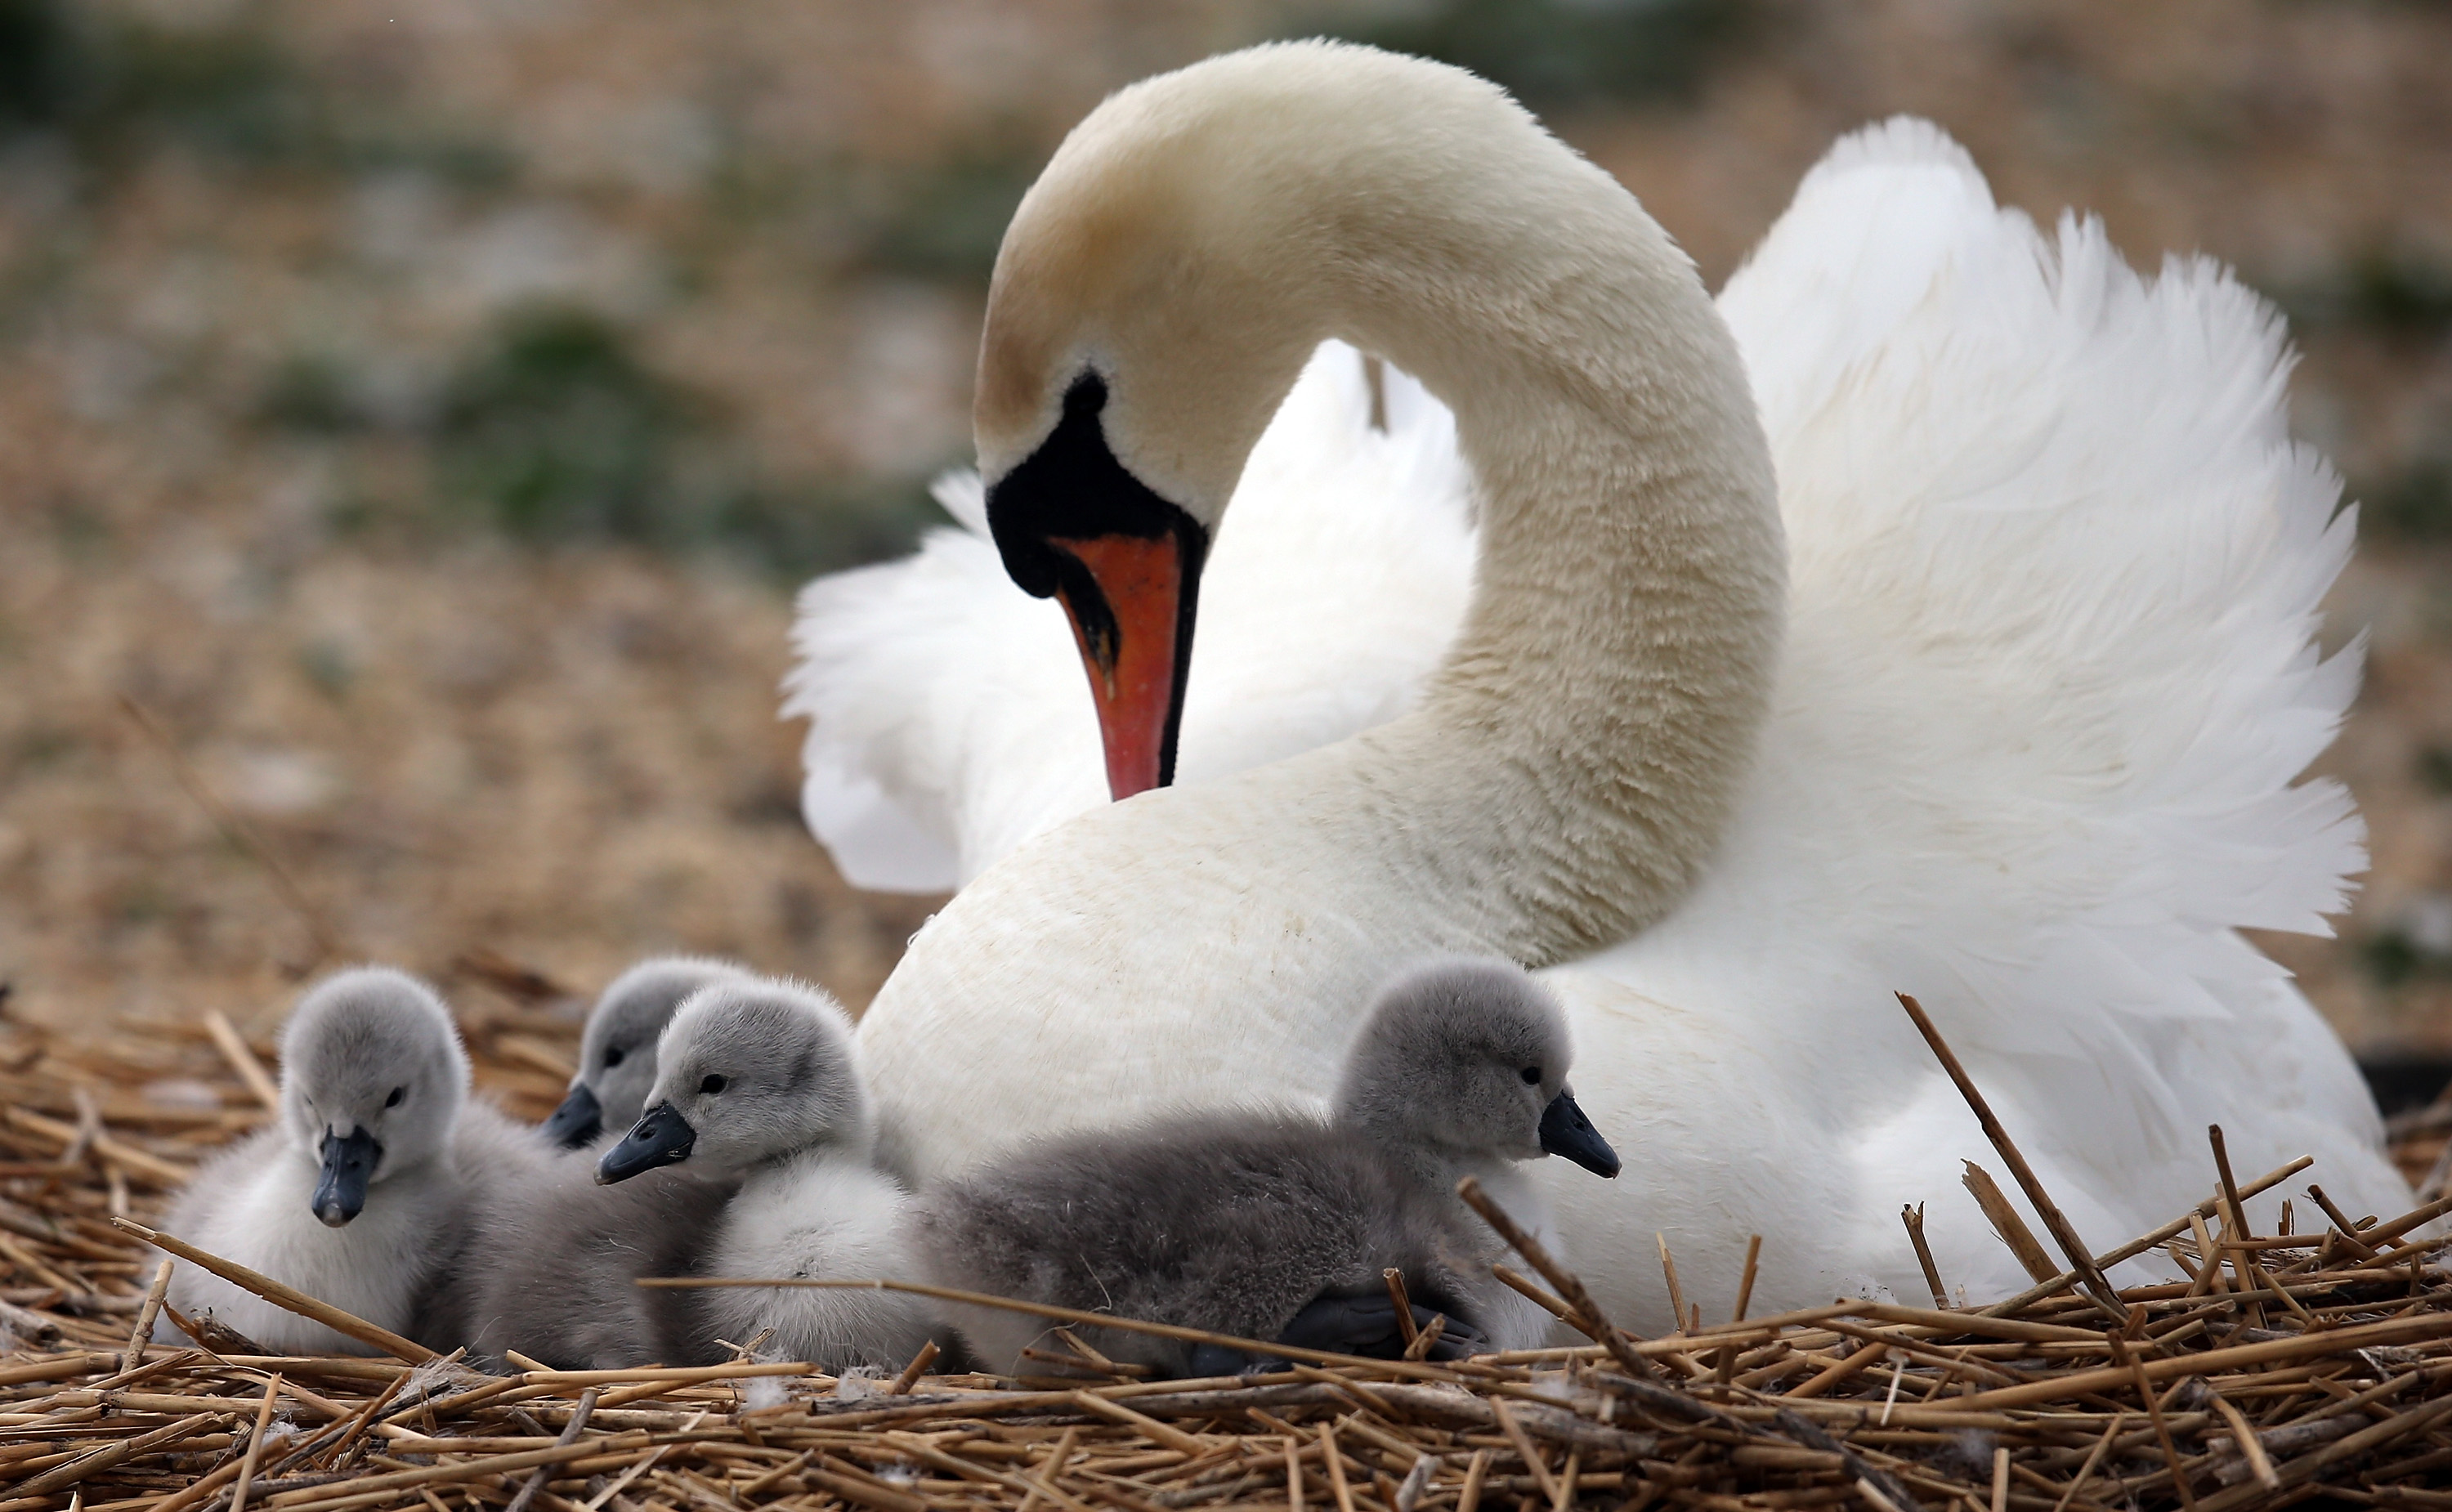 Recently hatched cygnets sit with their mother in a nest at Abbotsbury Swannery on May 23, 2013 near Weymouth, England.